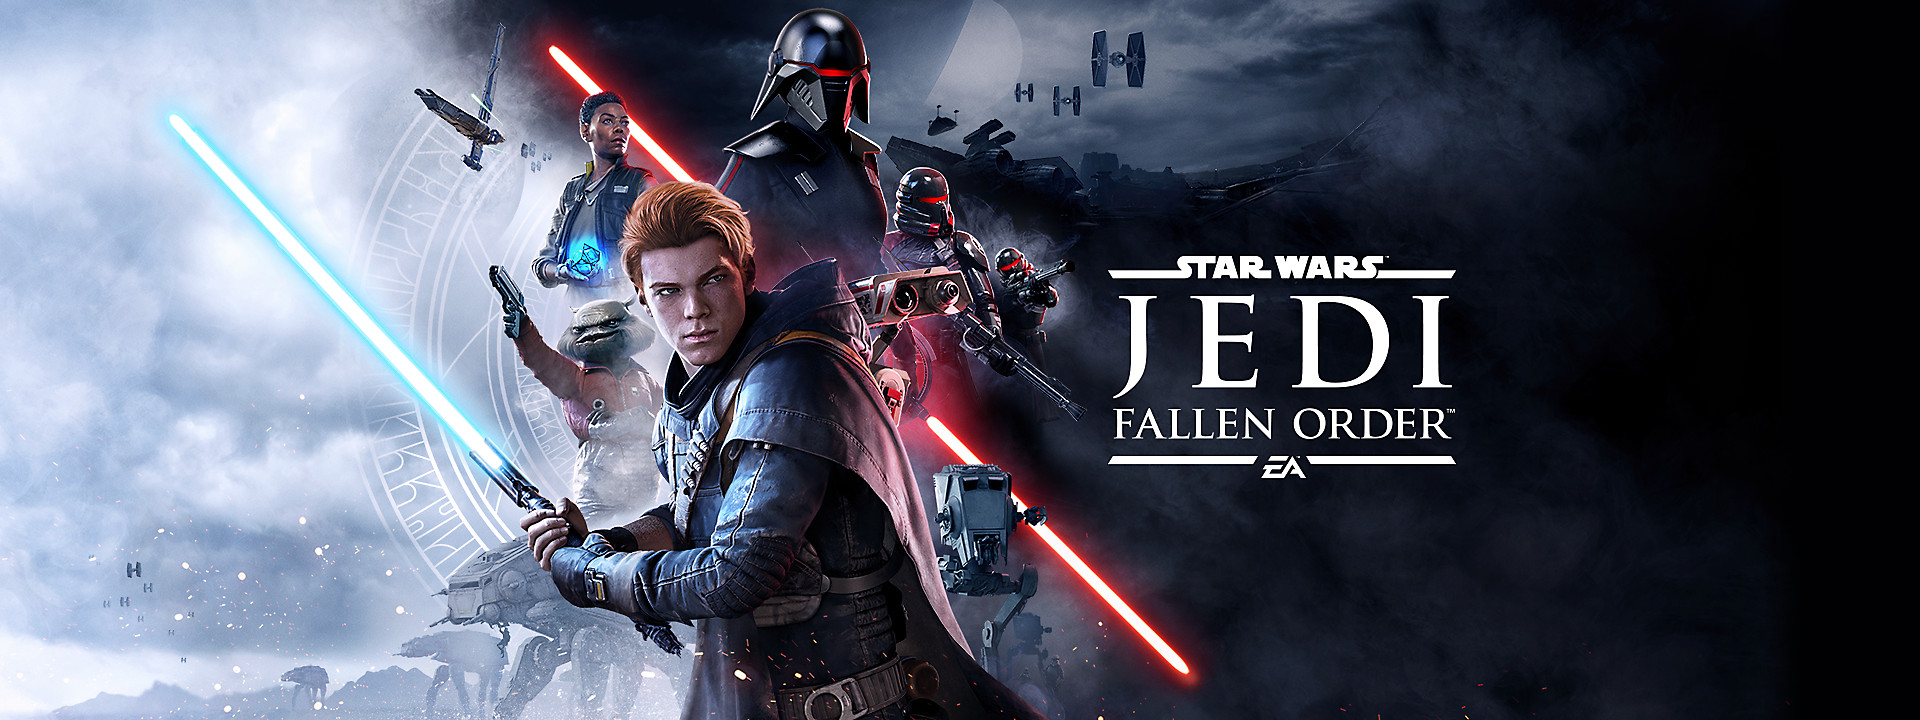 STAR WARS Jedi: Fallen Order - Now Available